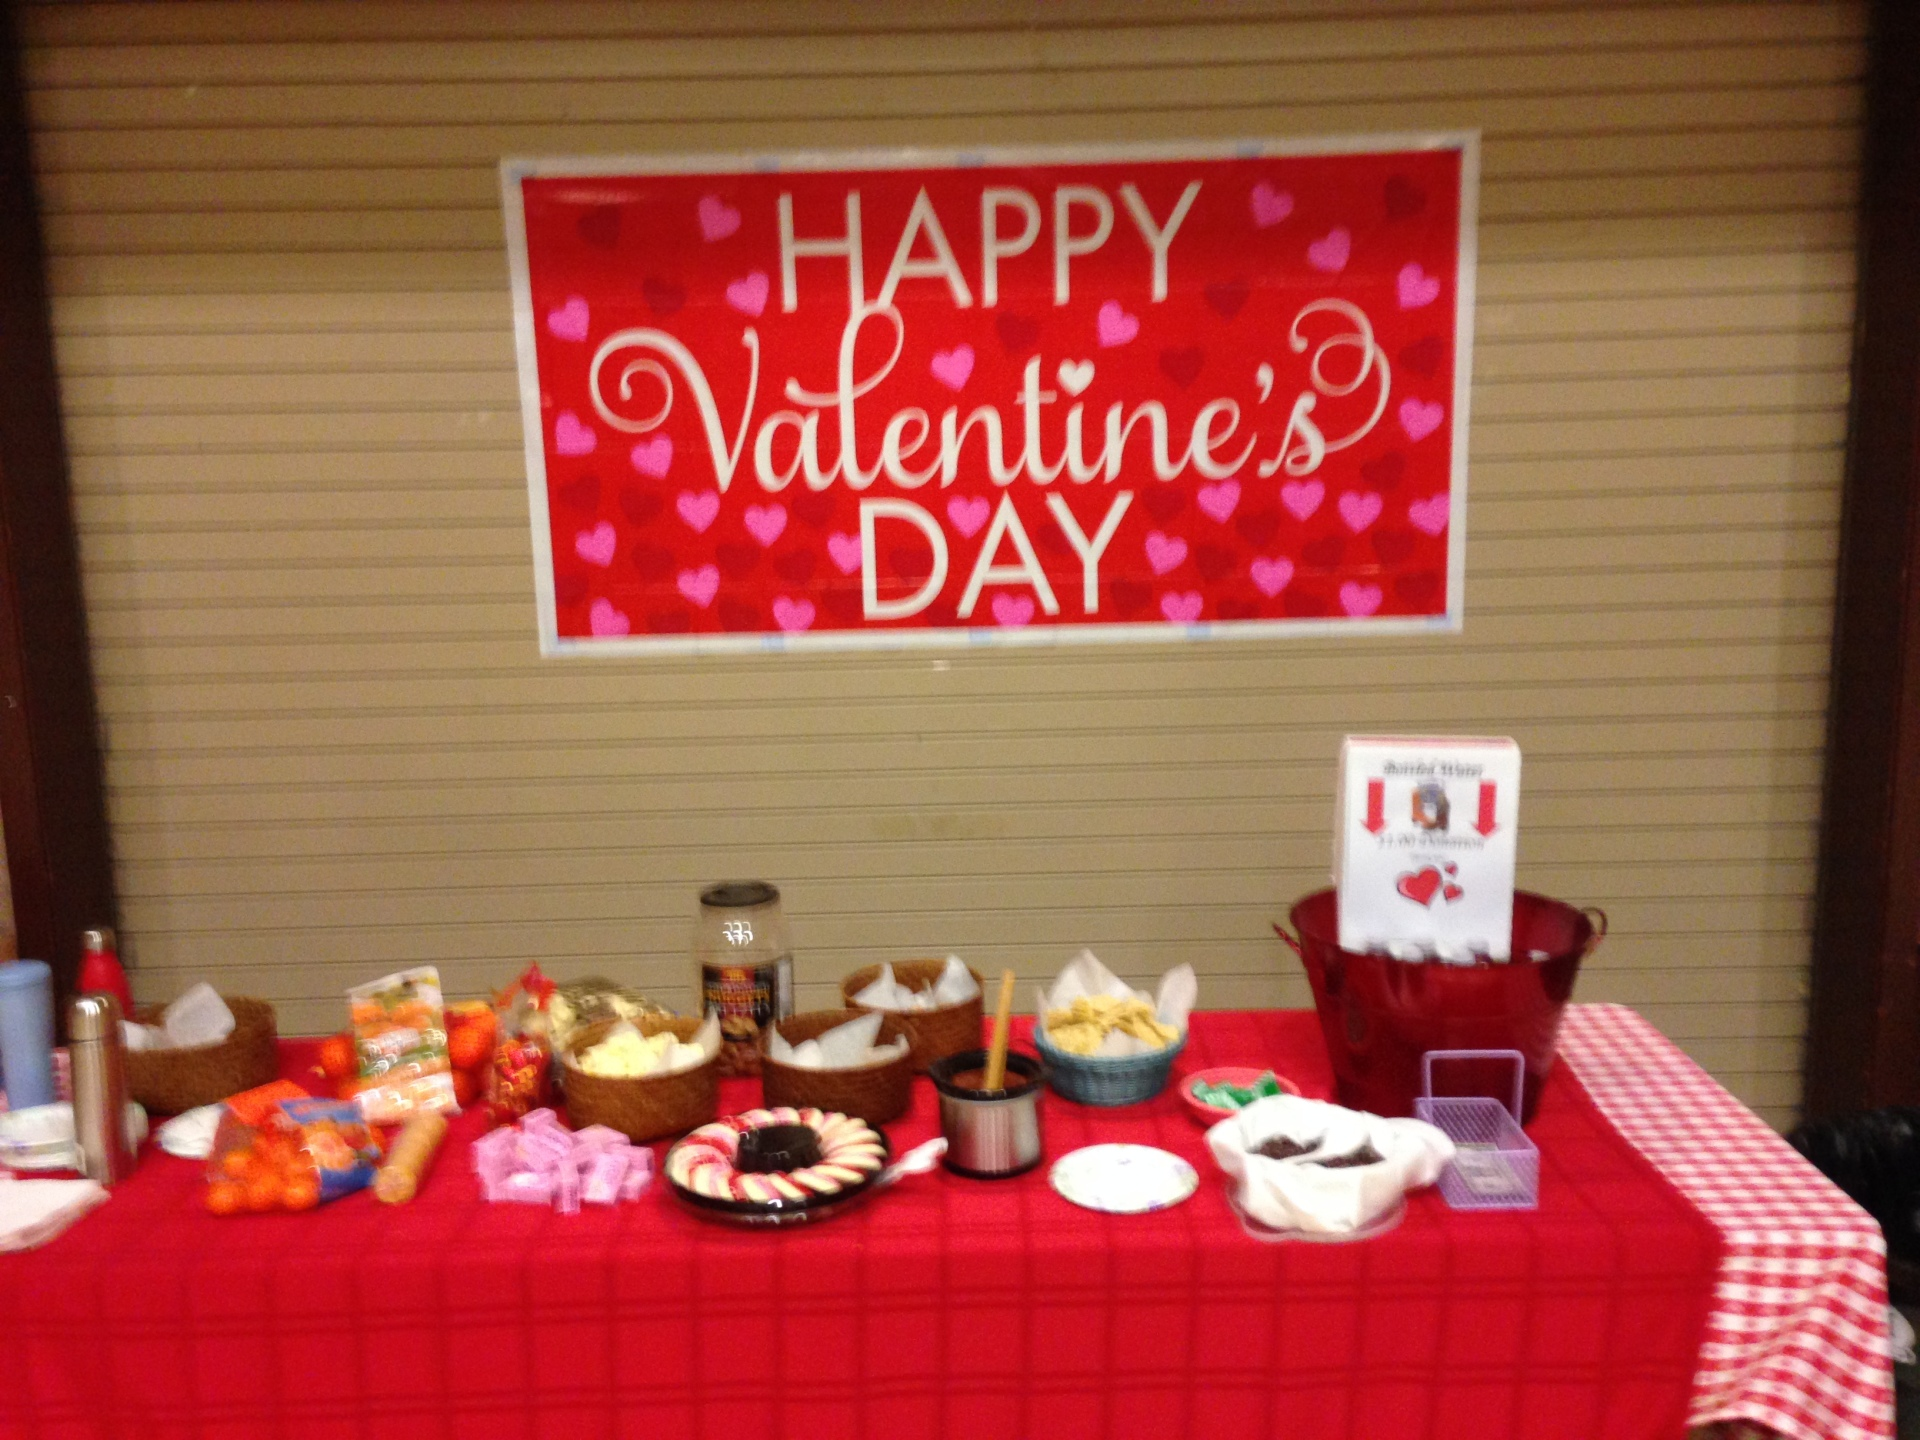 The Valentine's Day food table.